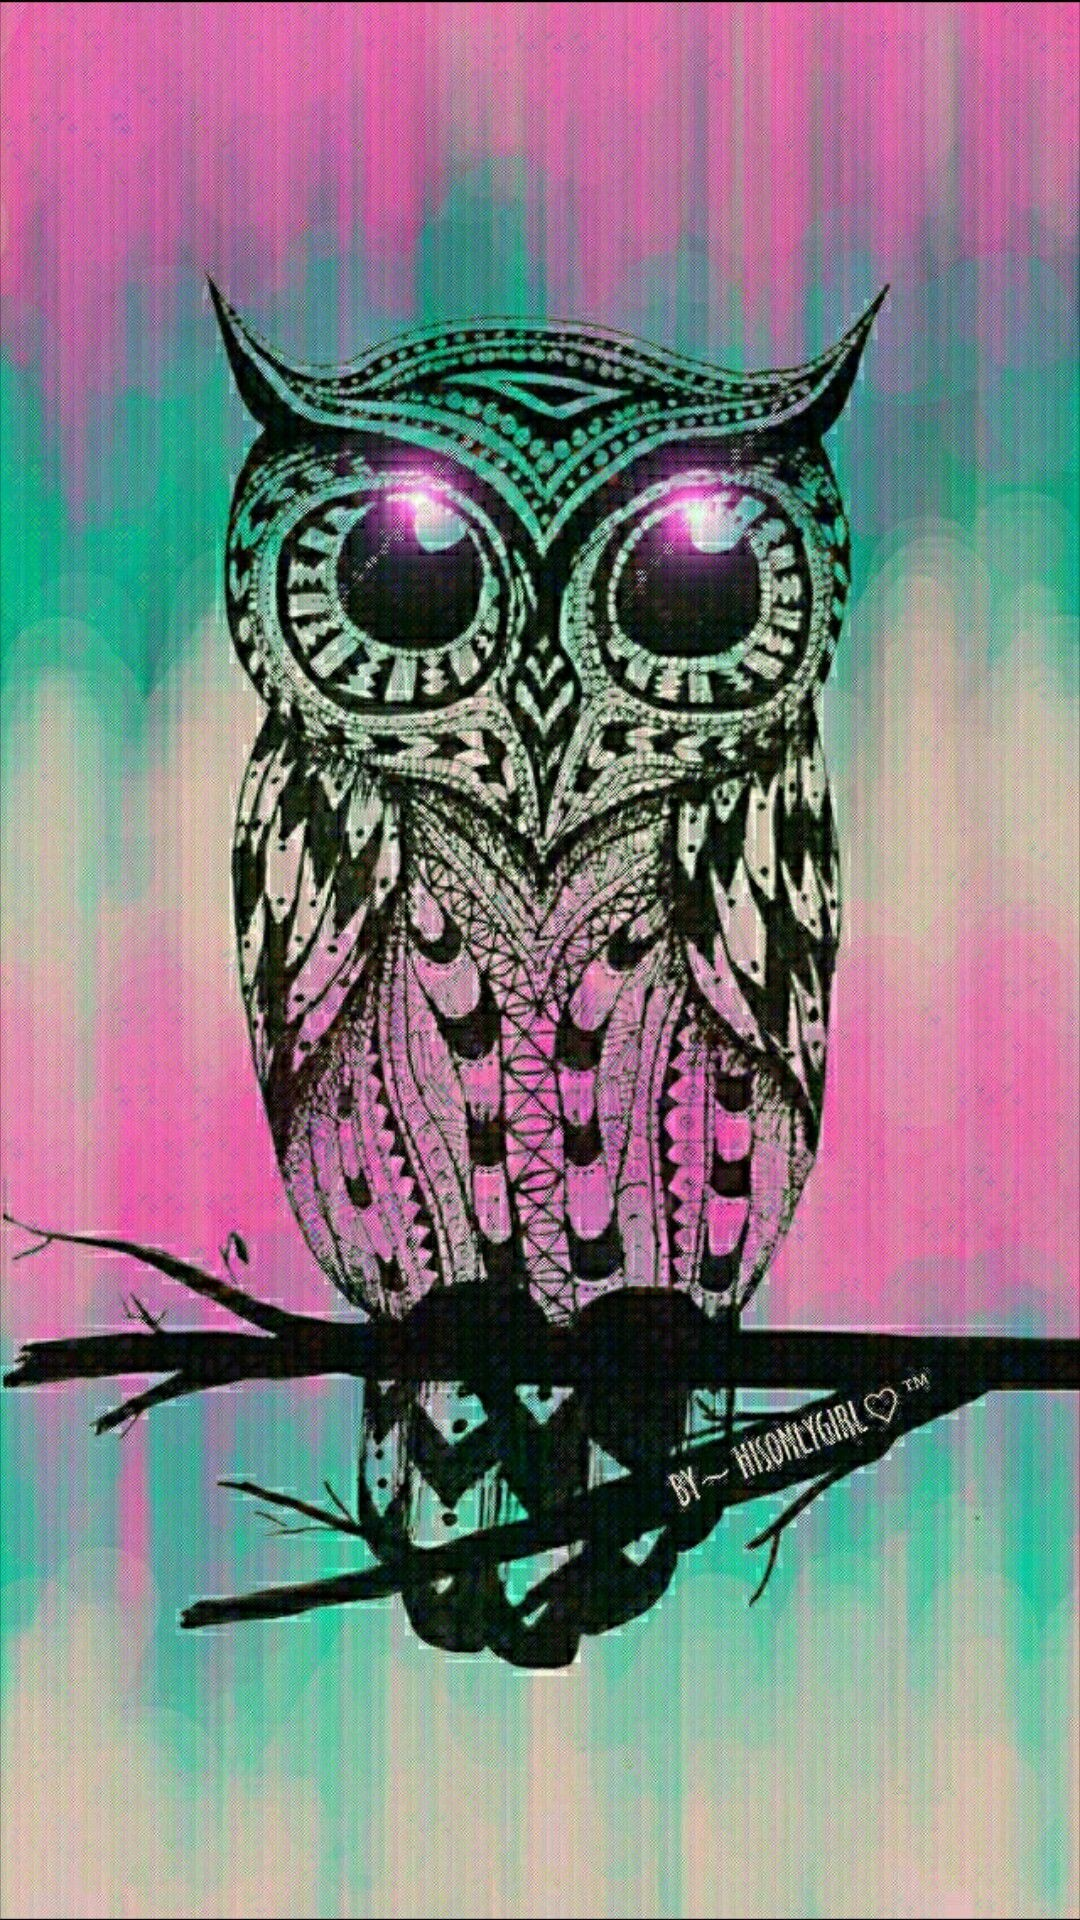 Res: 1080x1920, Cute owl, grunge wallpaper I created for the app CocoPPa.